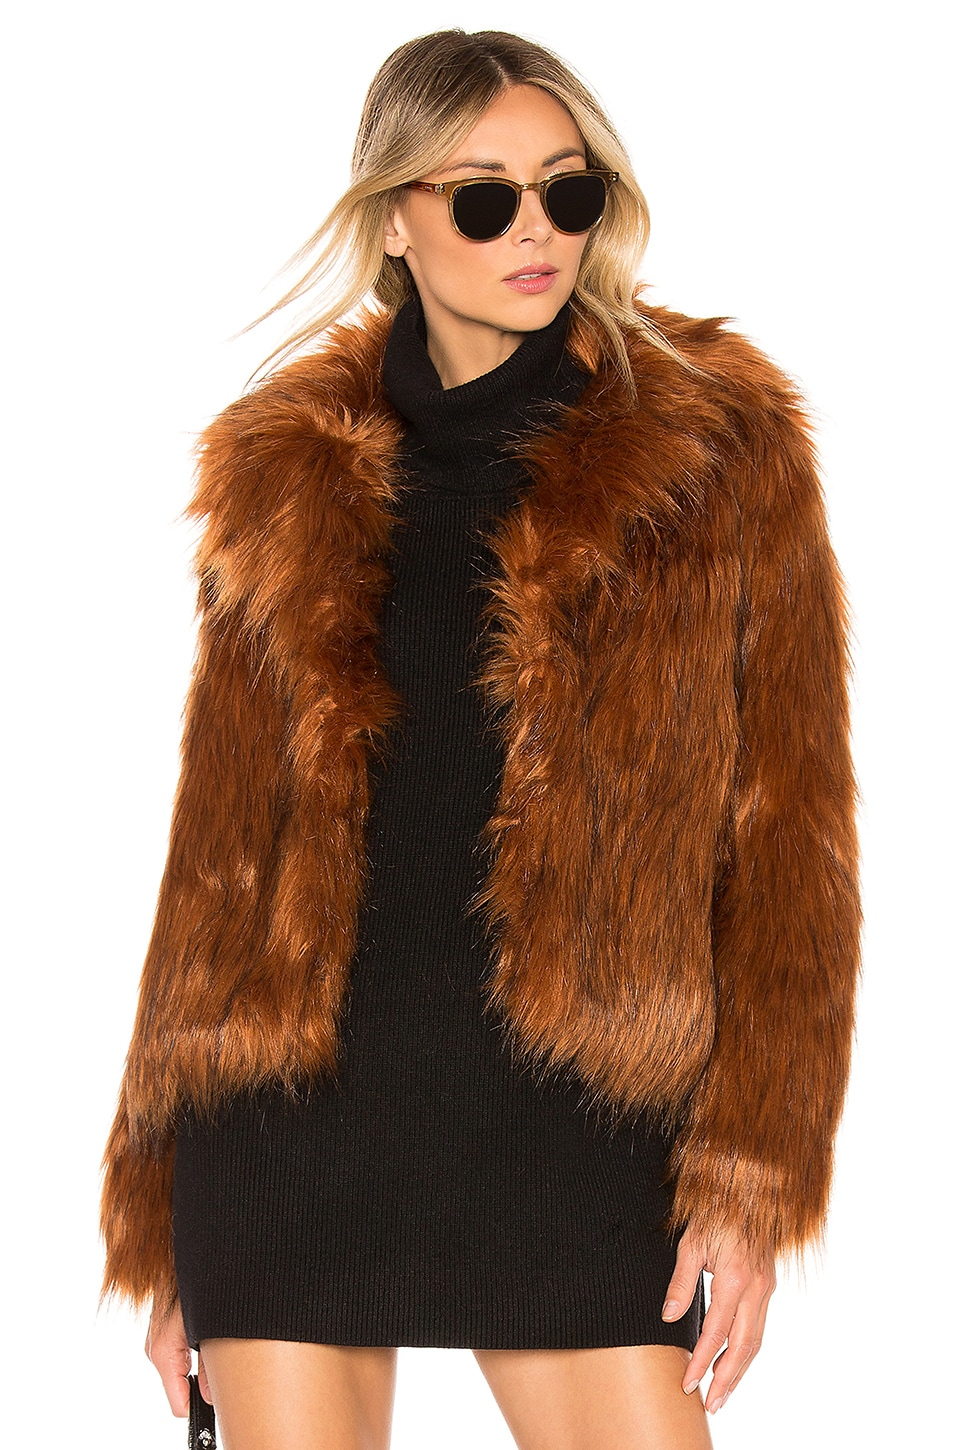 BB Dakota Penny Lane Faux Fur Jacket in Cognac